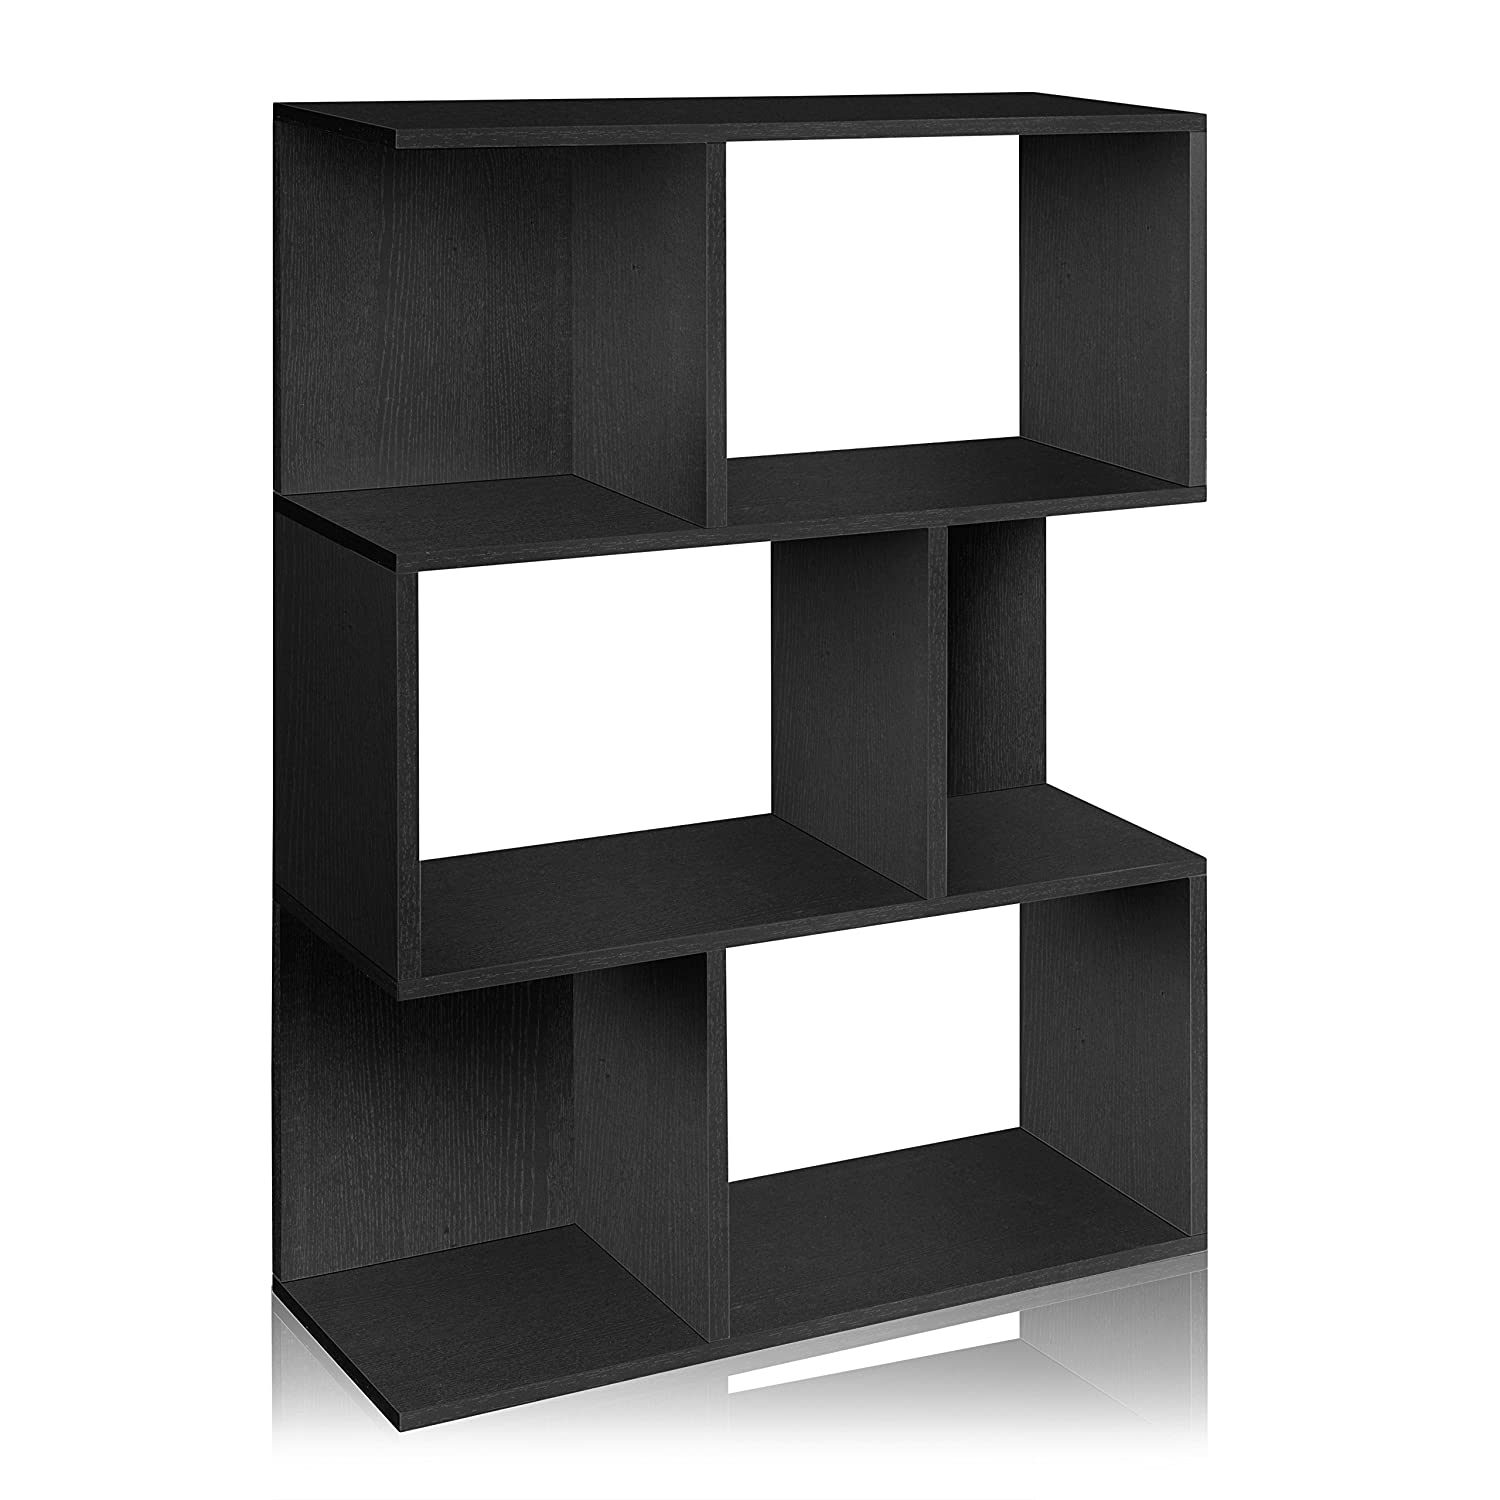 Amazon Com Way Basics Eco Madison Bookcase Room Divider And Storage Shelf Black Made From Sustainable Non Toxic Zboard Paperboard Kitchen Dining